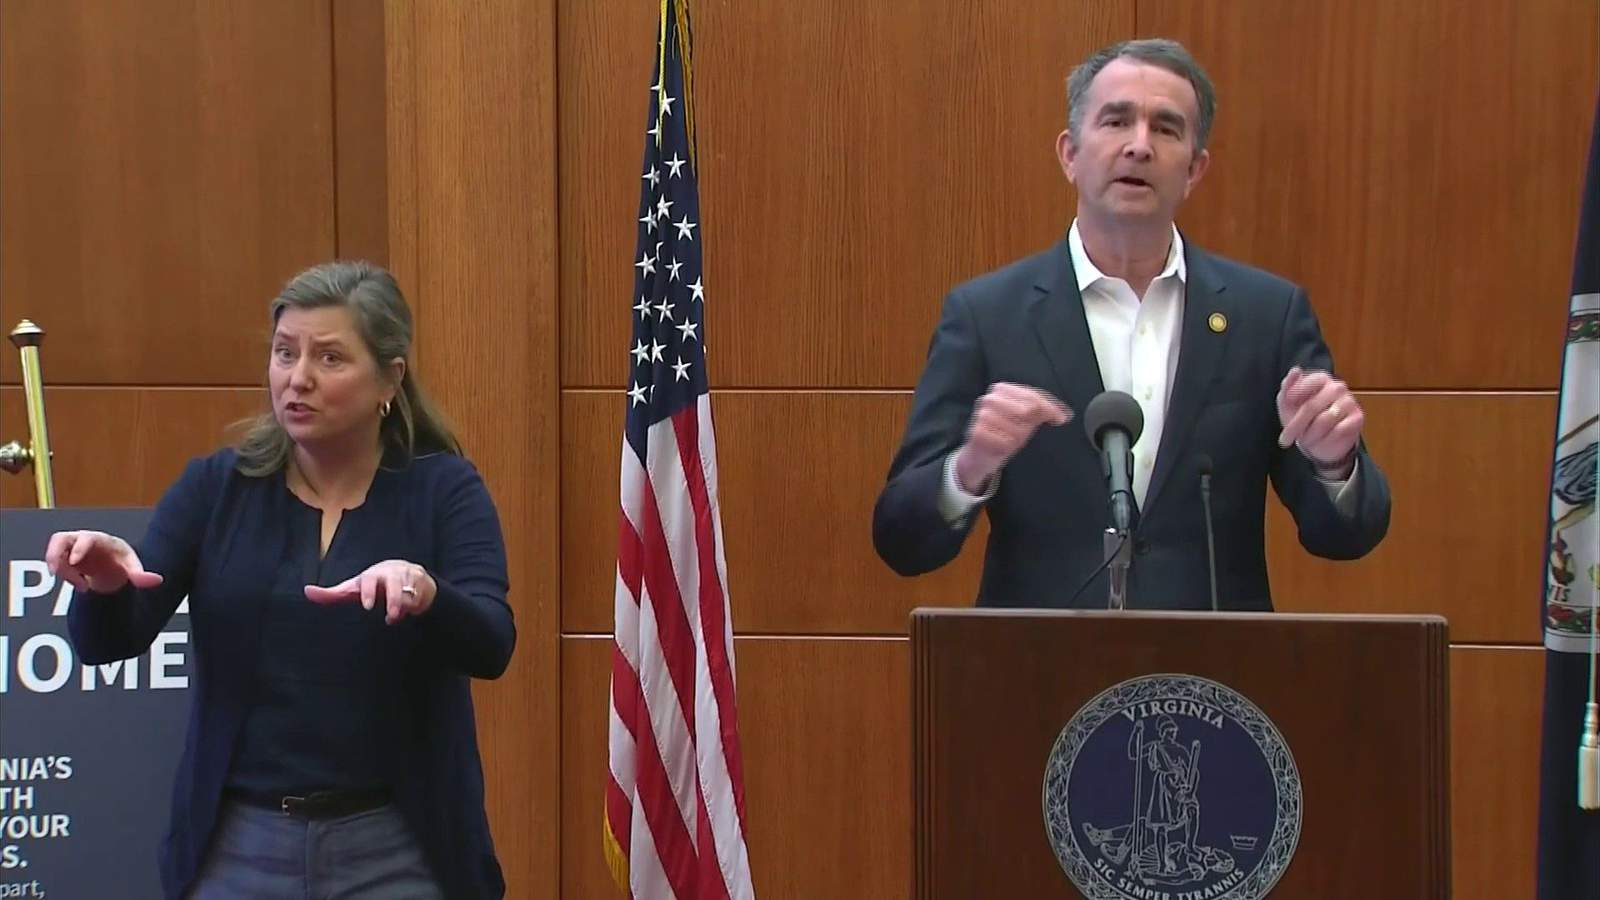 WATCH LIVE: Gov. Ralph Northam to give April 1 coronavirus update - WSLS 10